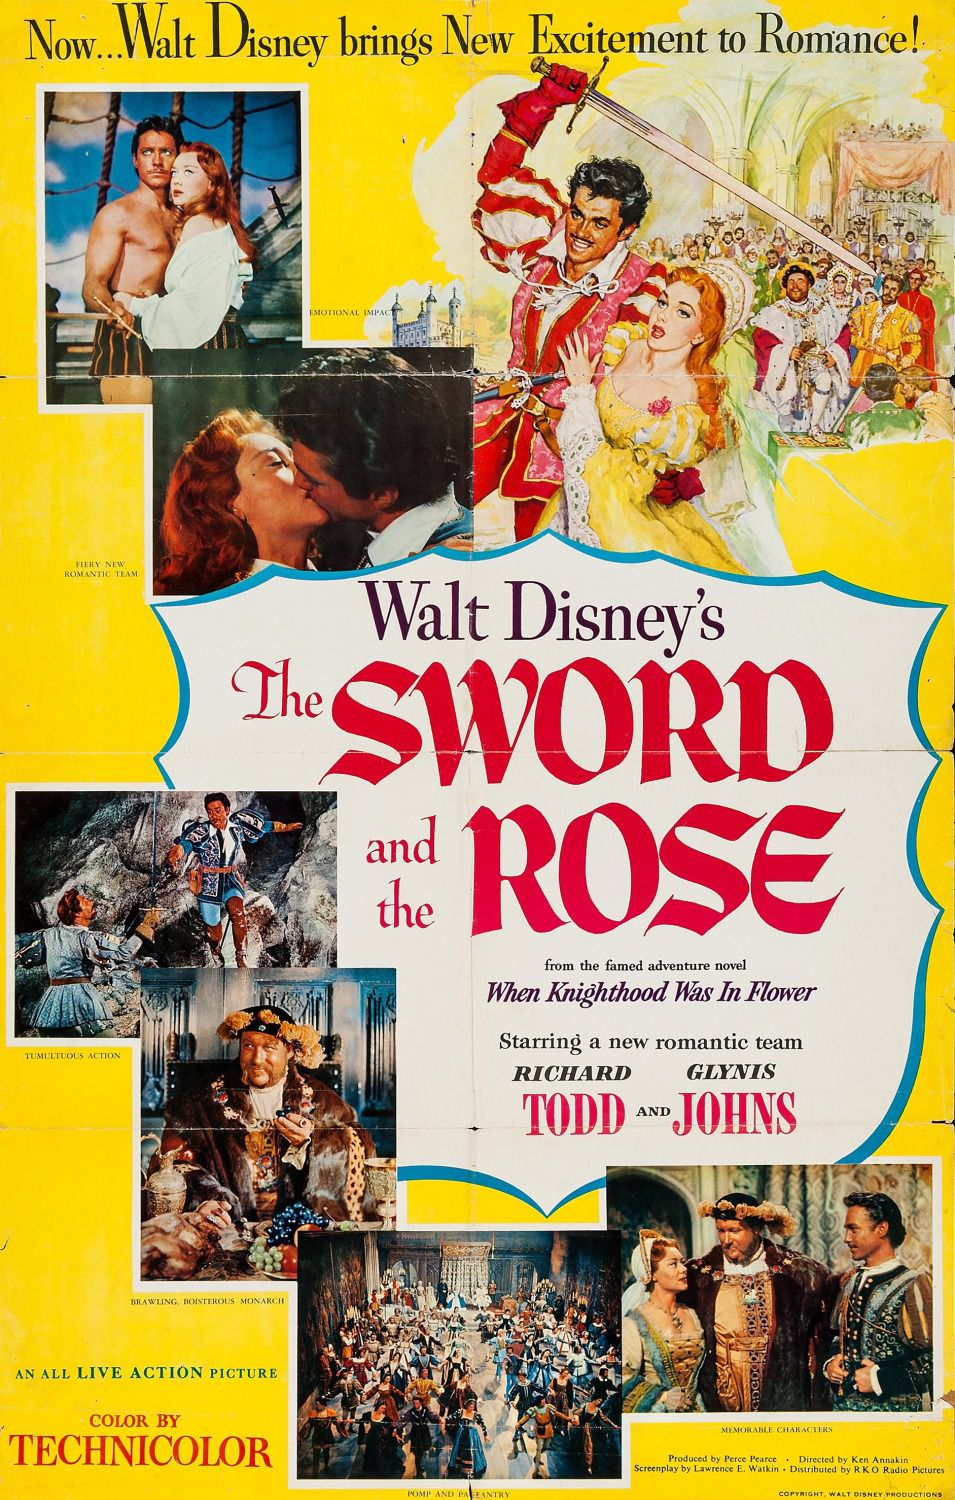 Sword and the Rose - Walt Disney film from the famed adventure novel When Khnighthood was in Flower - starring a new romantic team Richard Todd and Glynis Johns - poster classic old